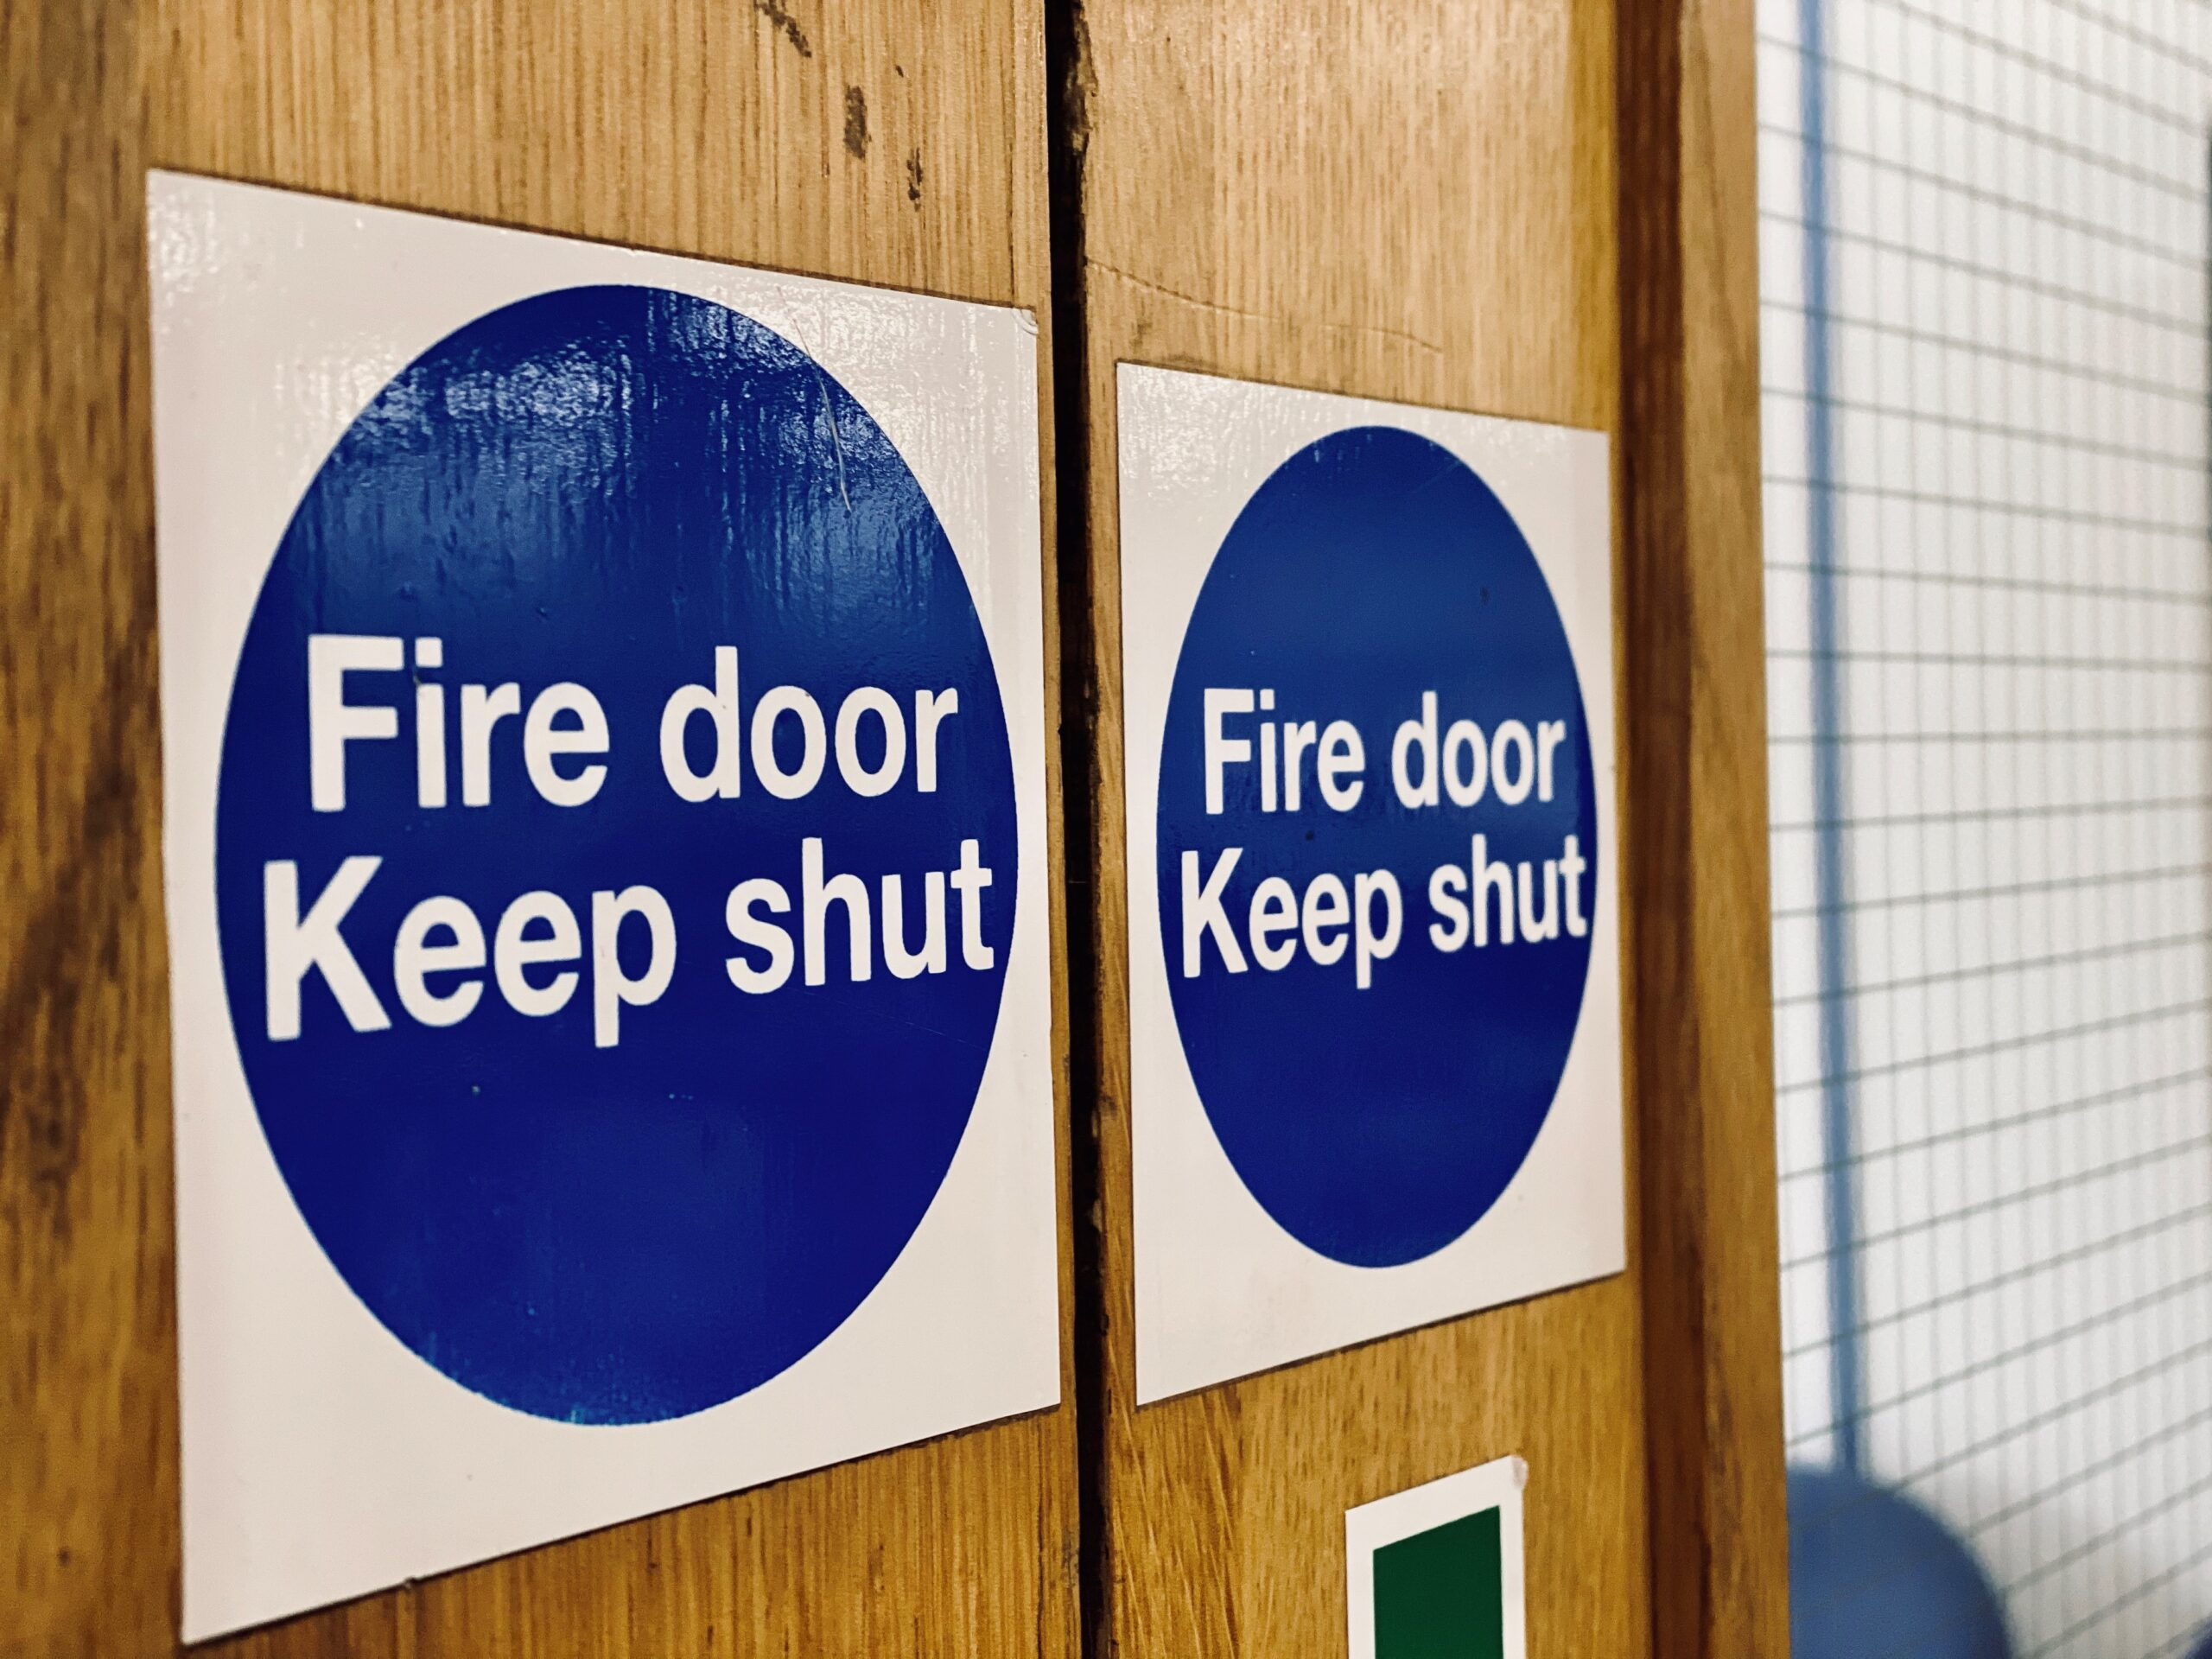 Fire door sign on door